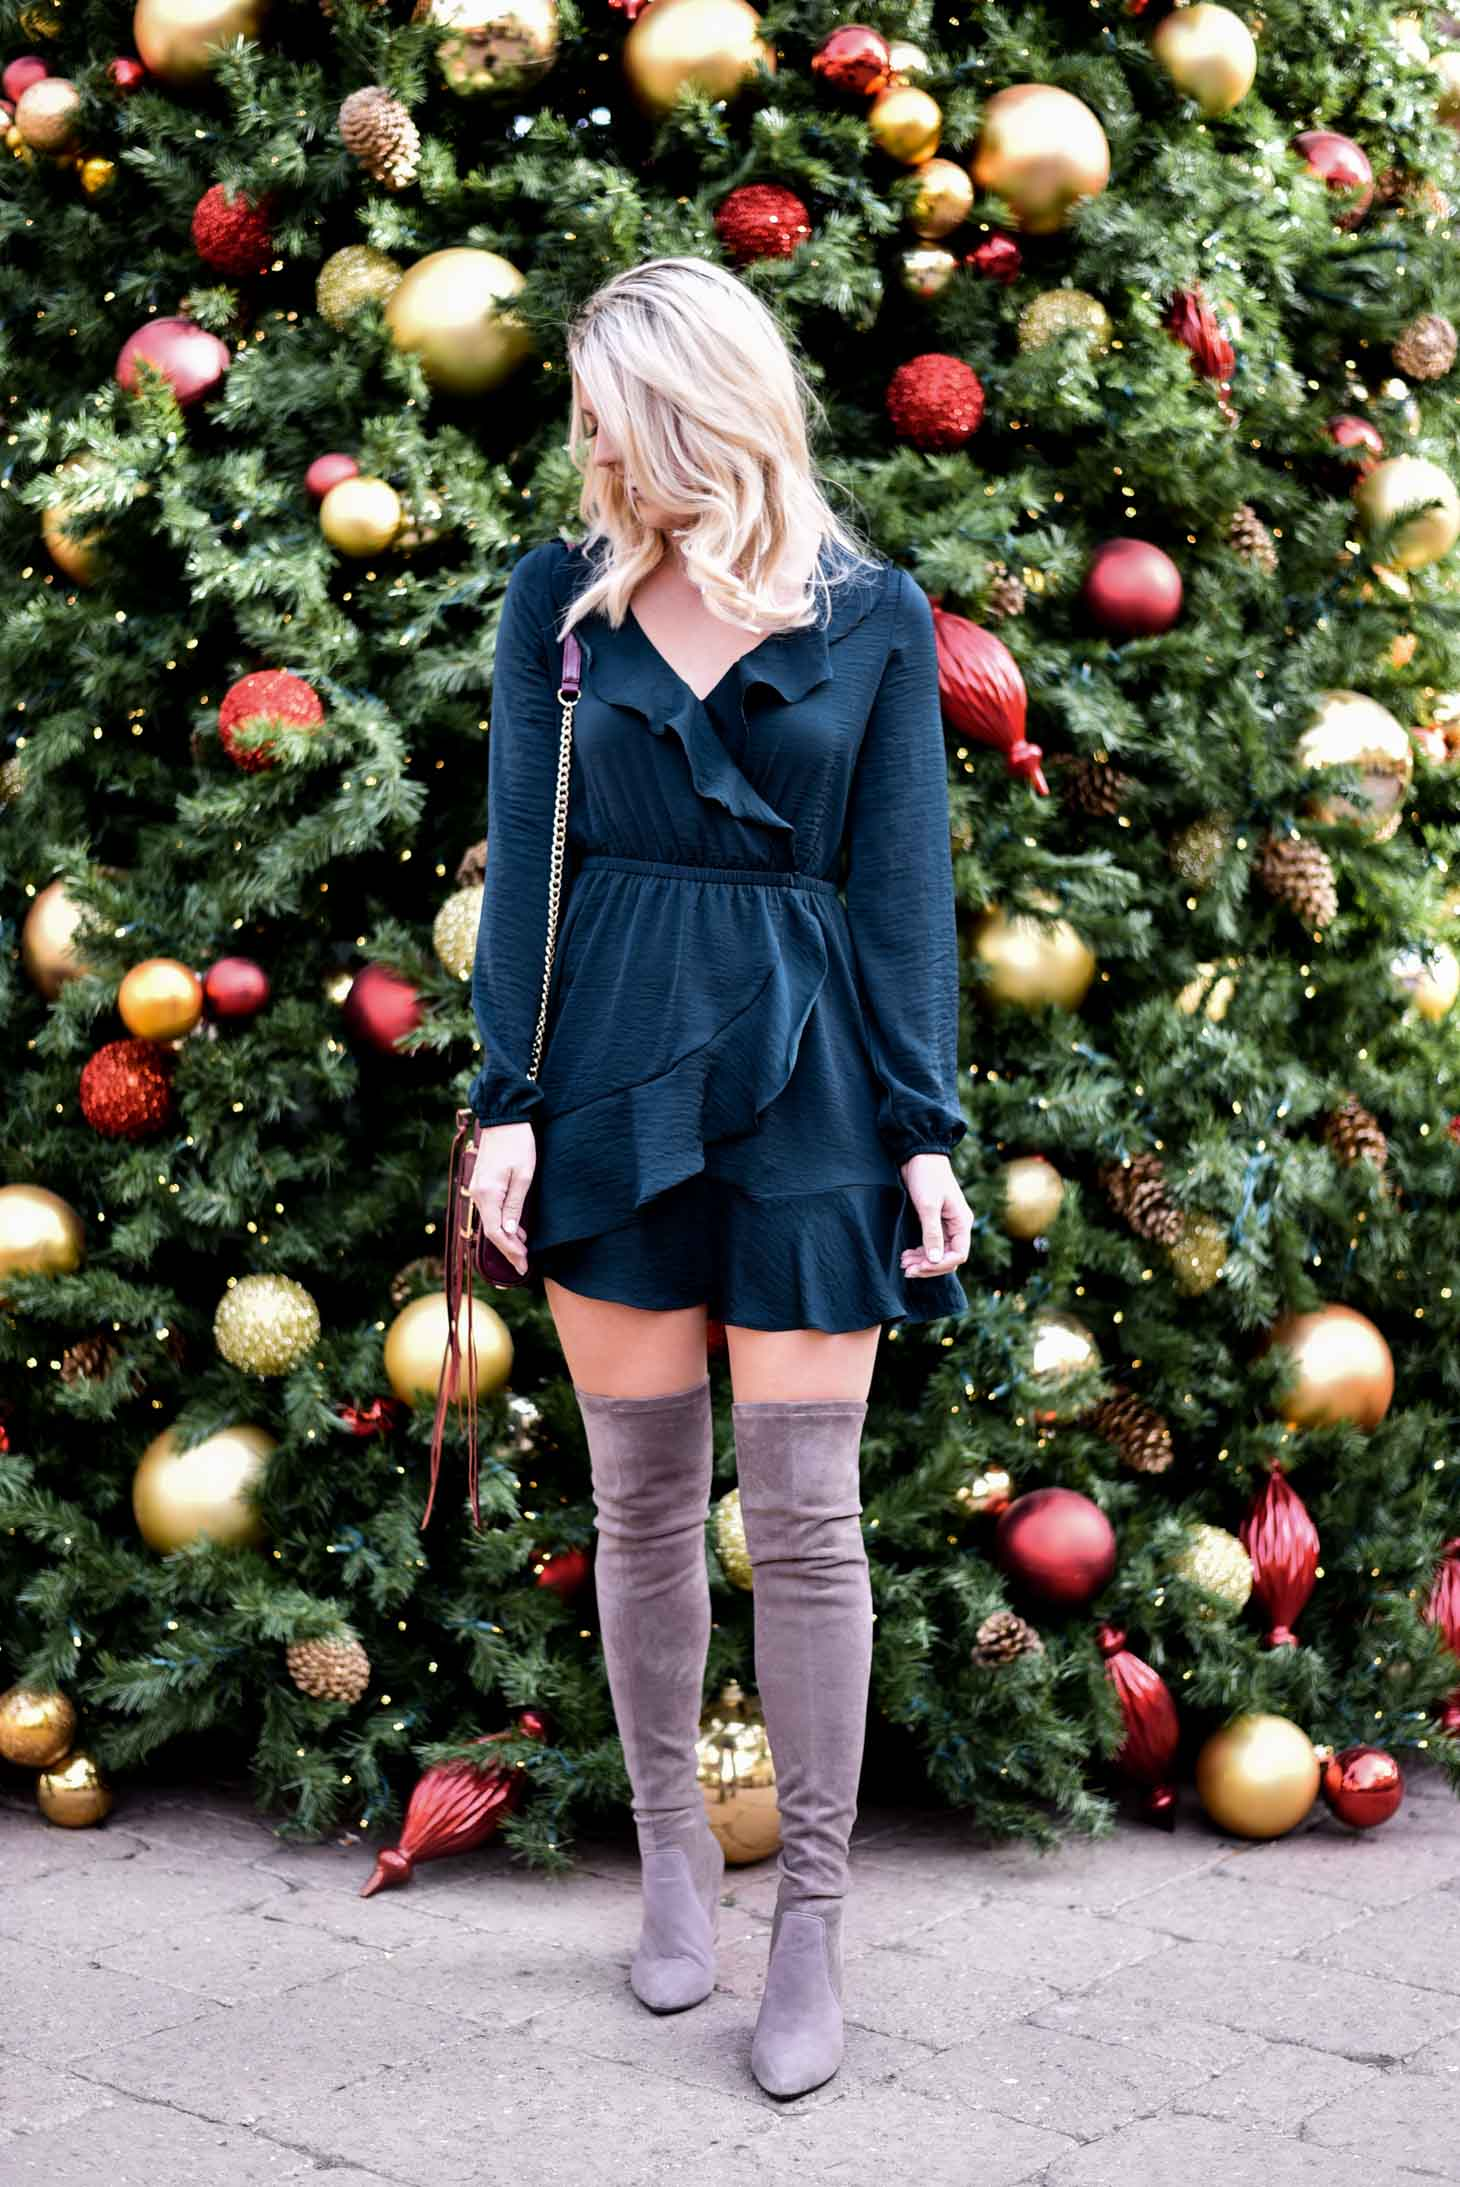 Erin Elizabeth of Wink and a Twirl in a Green Holiday Dress